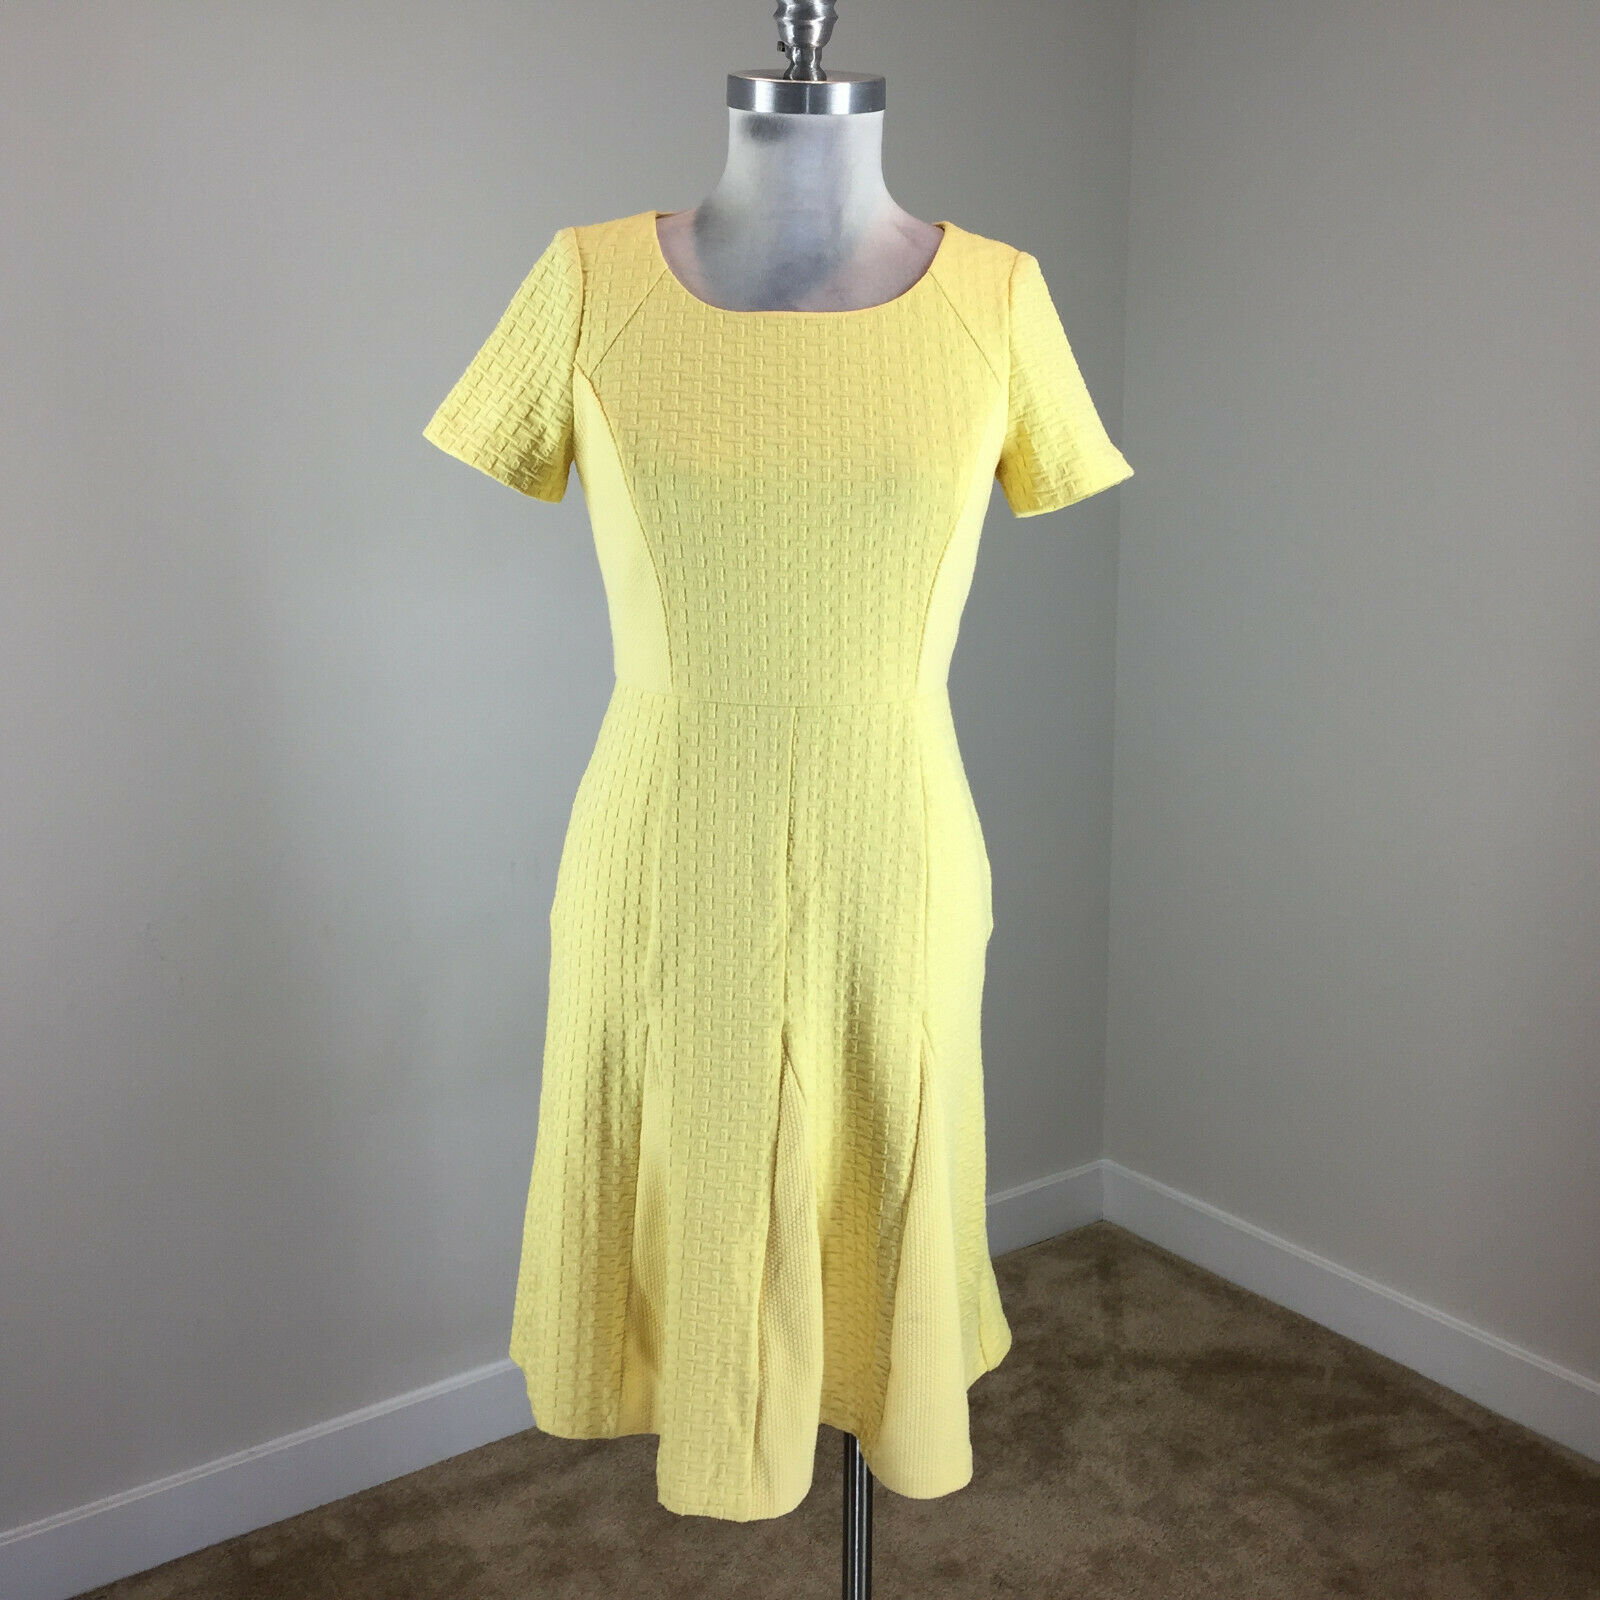 Talbots XS 2 Yellow A Line flounce dress Ponte knit Cap Sleeve Excellent